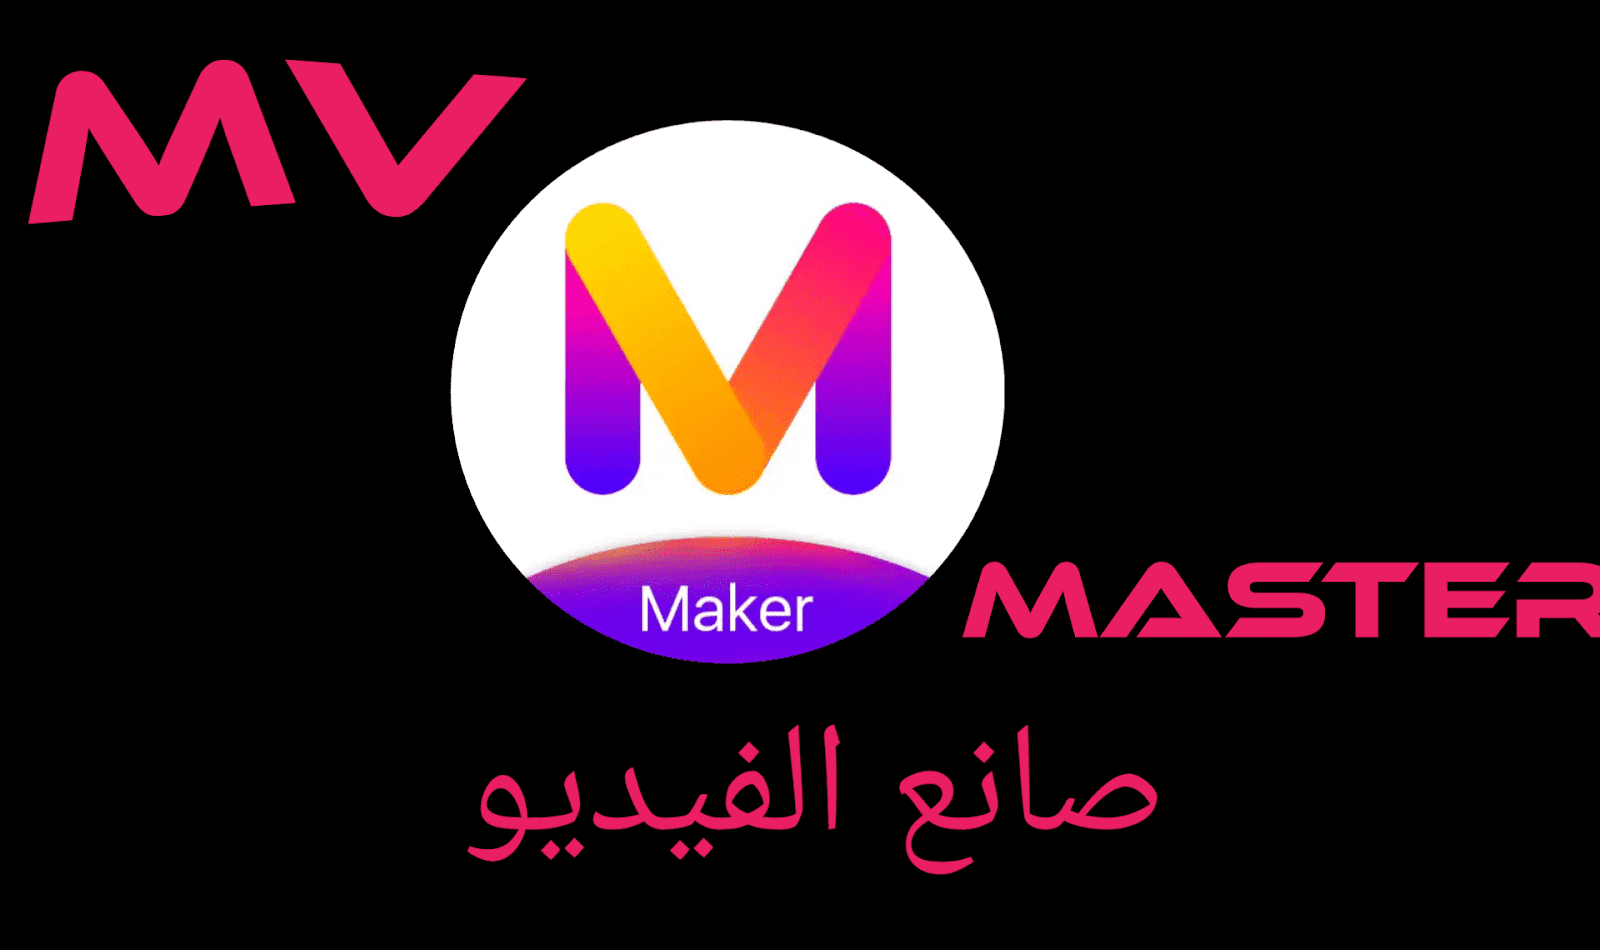 Download mv master to make video with photos and music